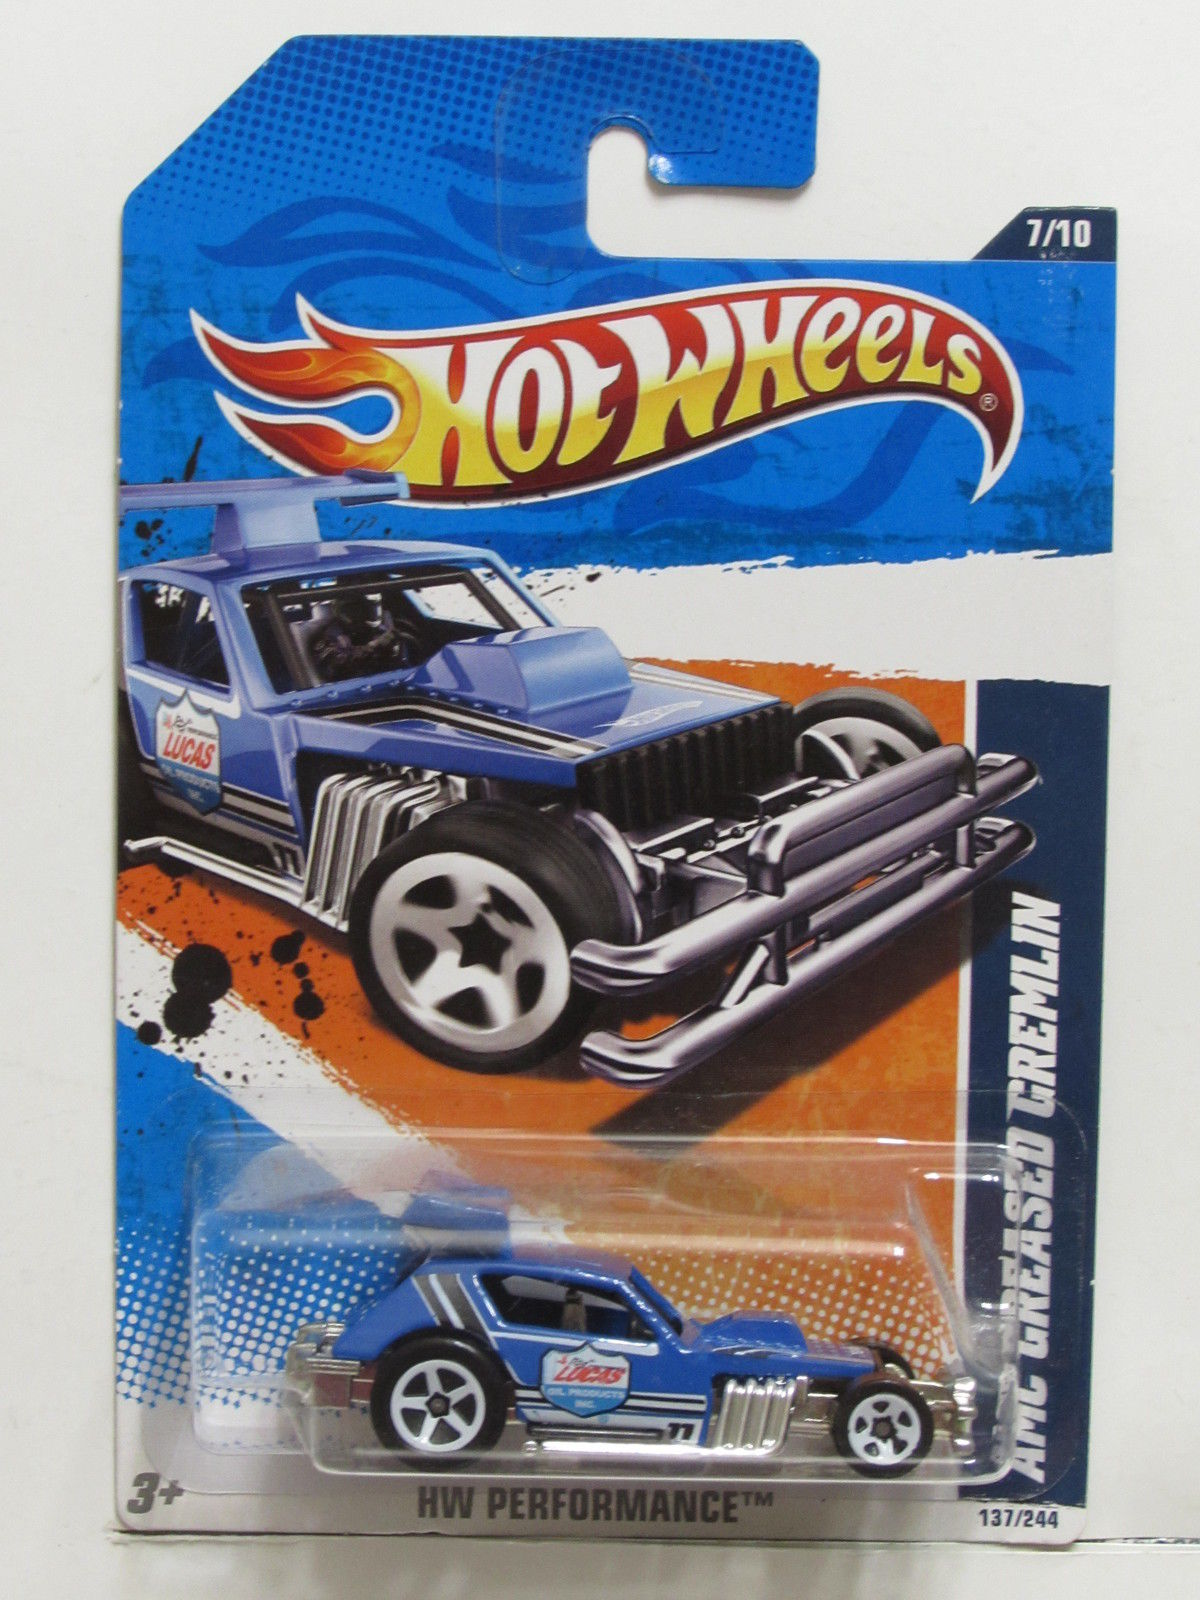 HOT WHEELS 2011 #07/10 AMC GREASED GREMLIN HW PERFORMANCE